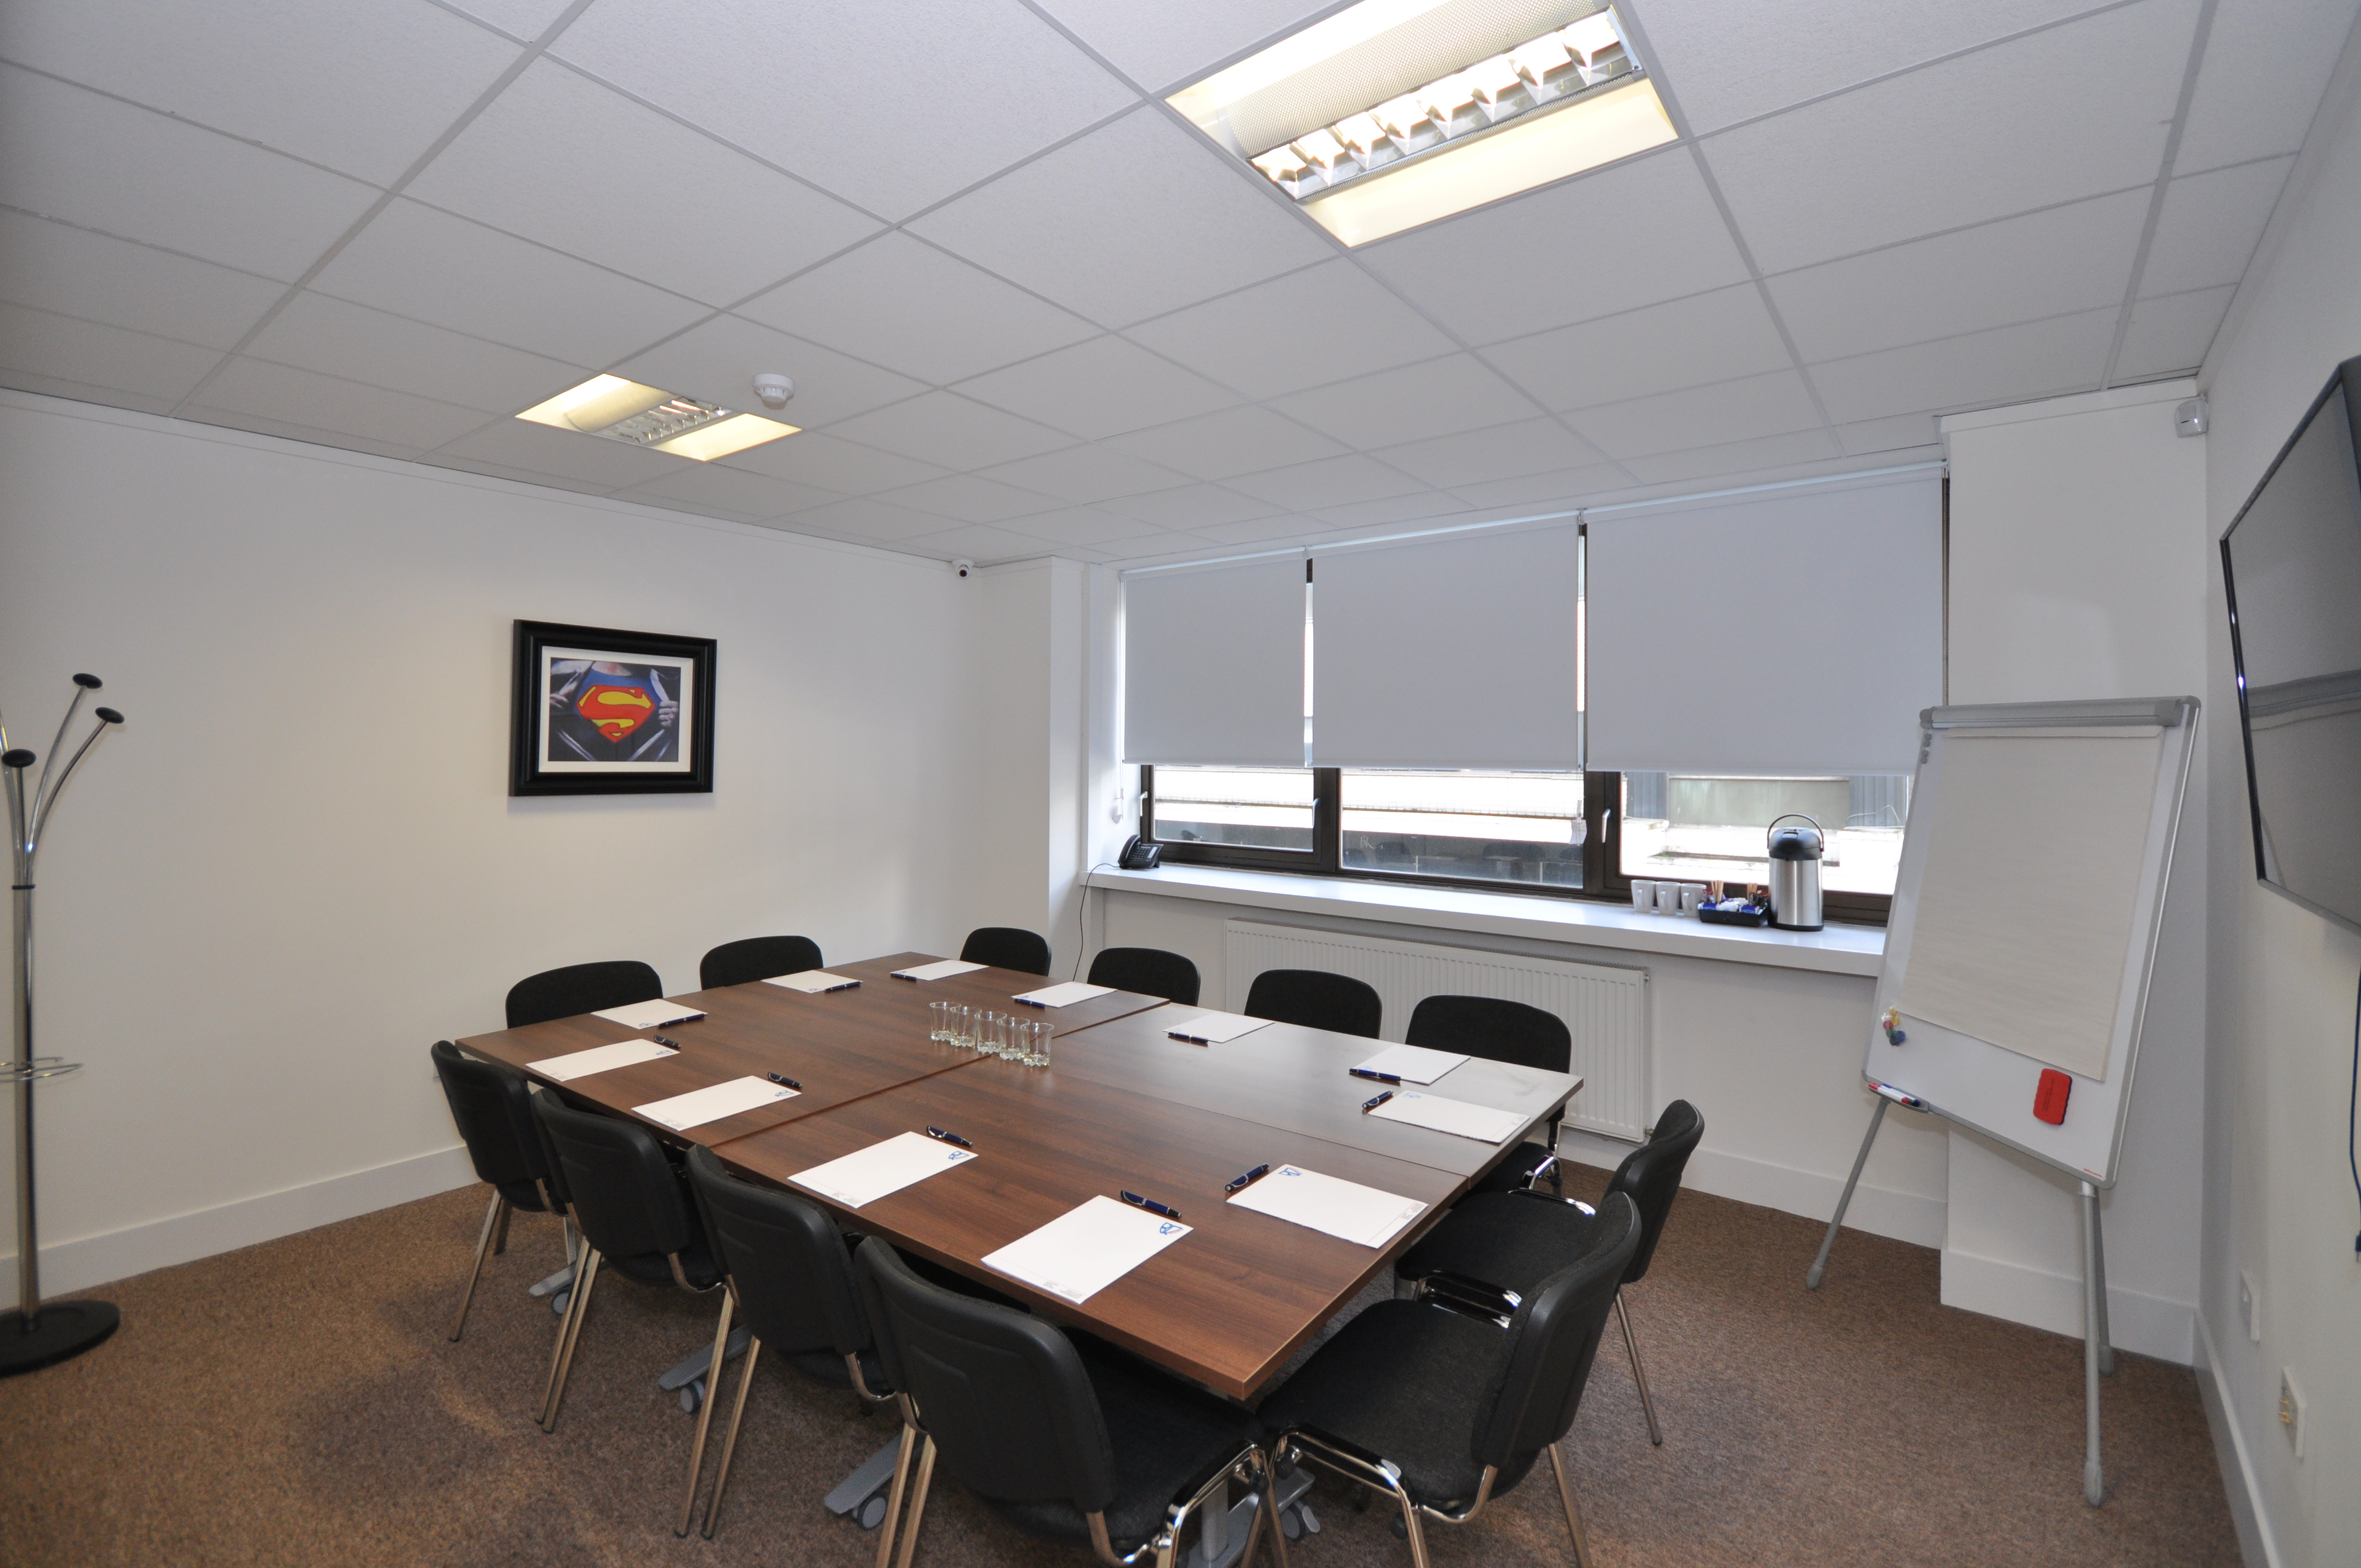 Our Spacious, Modern Training Room can comfortably seat 12-14 people